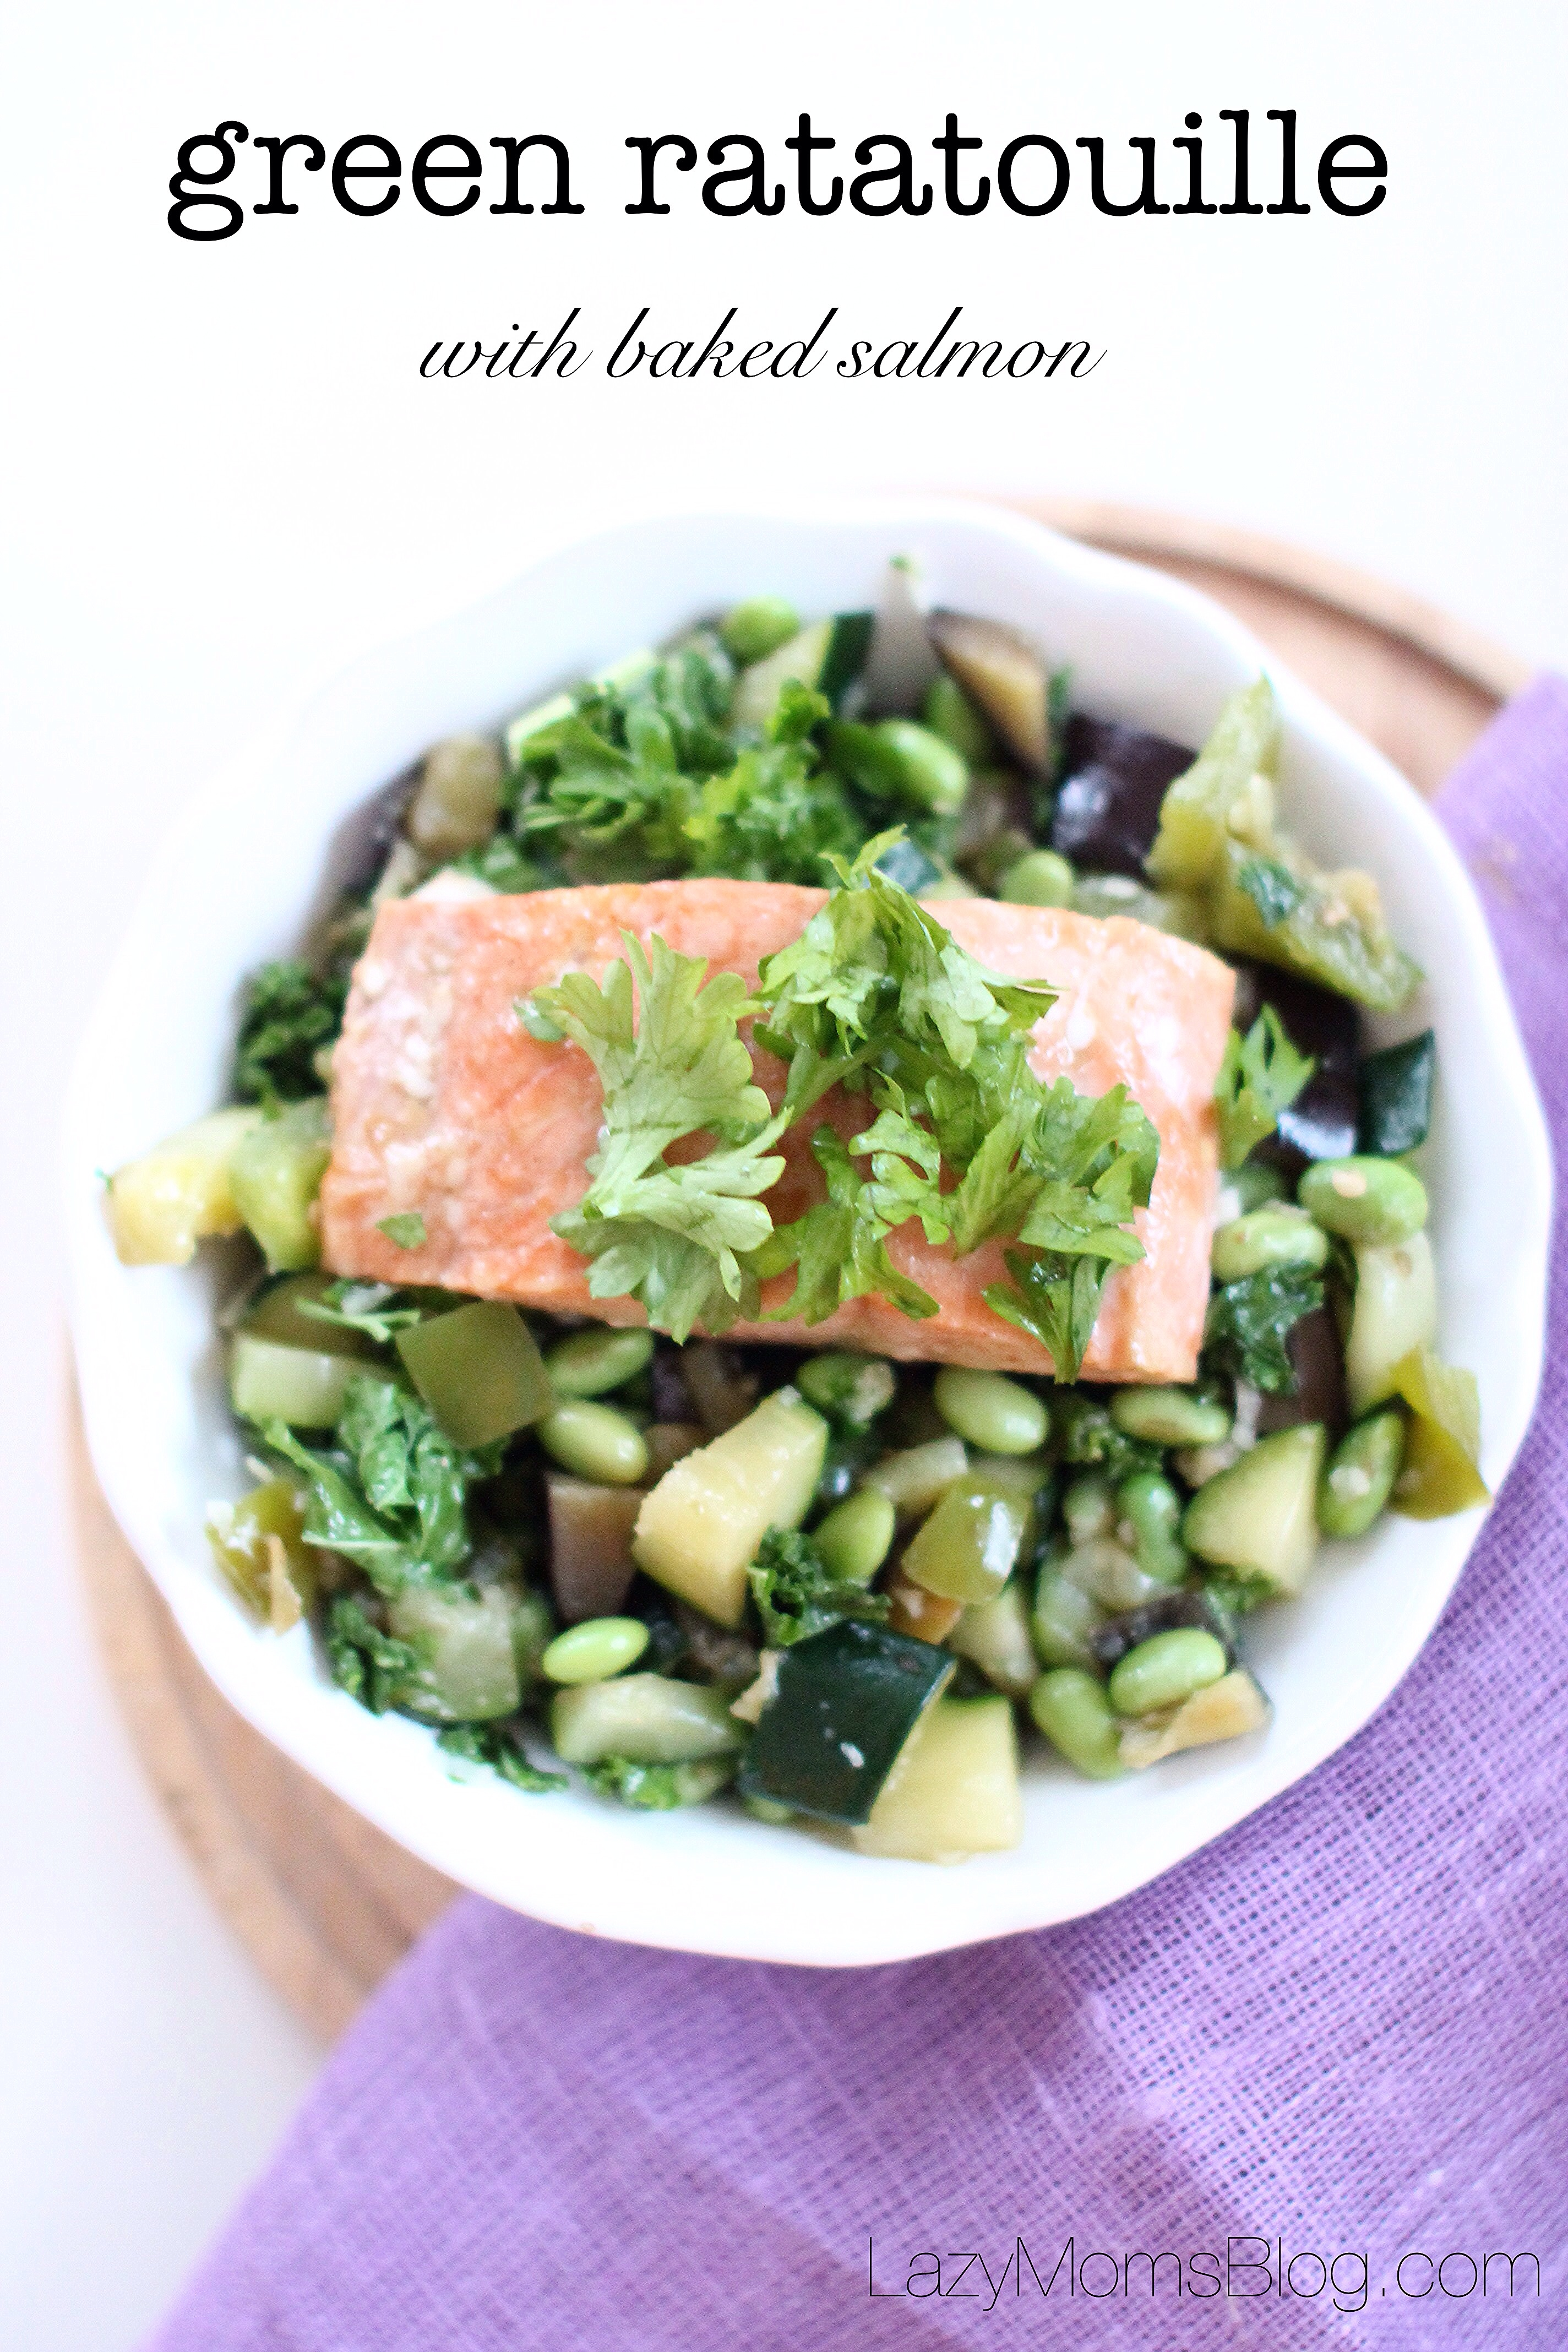 This amazing green ratatouille with kale, edame and salmon, perfect healthy and easy dinner! #healthy